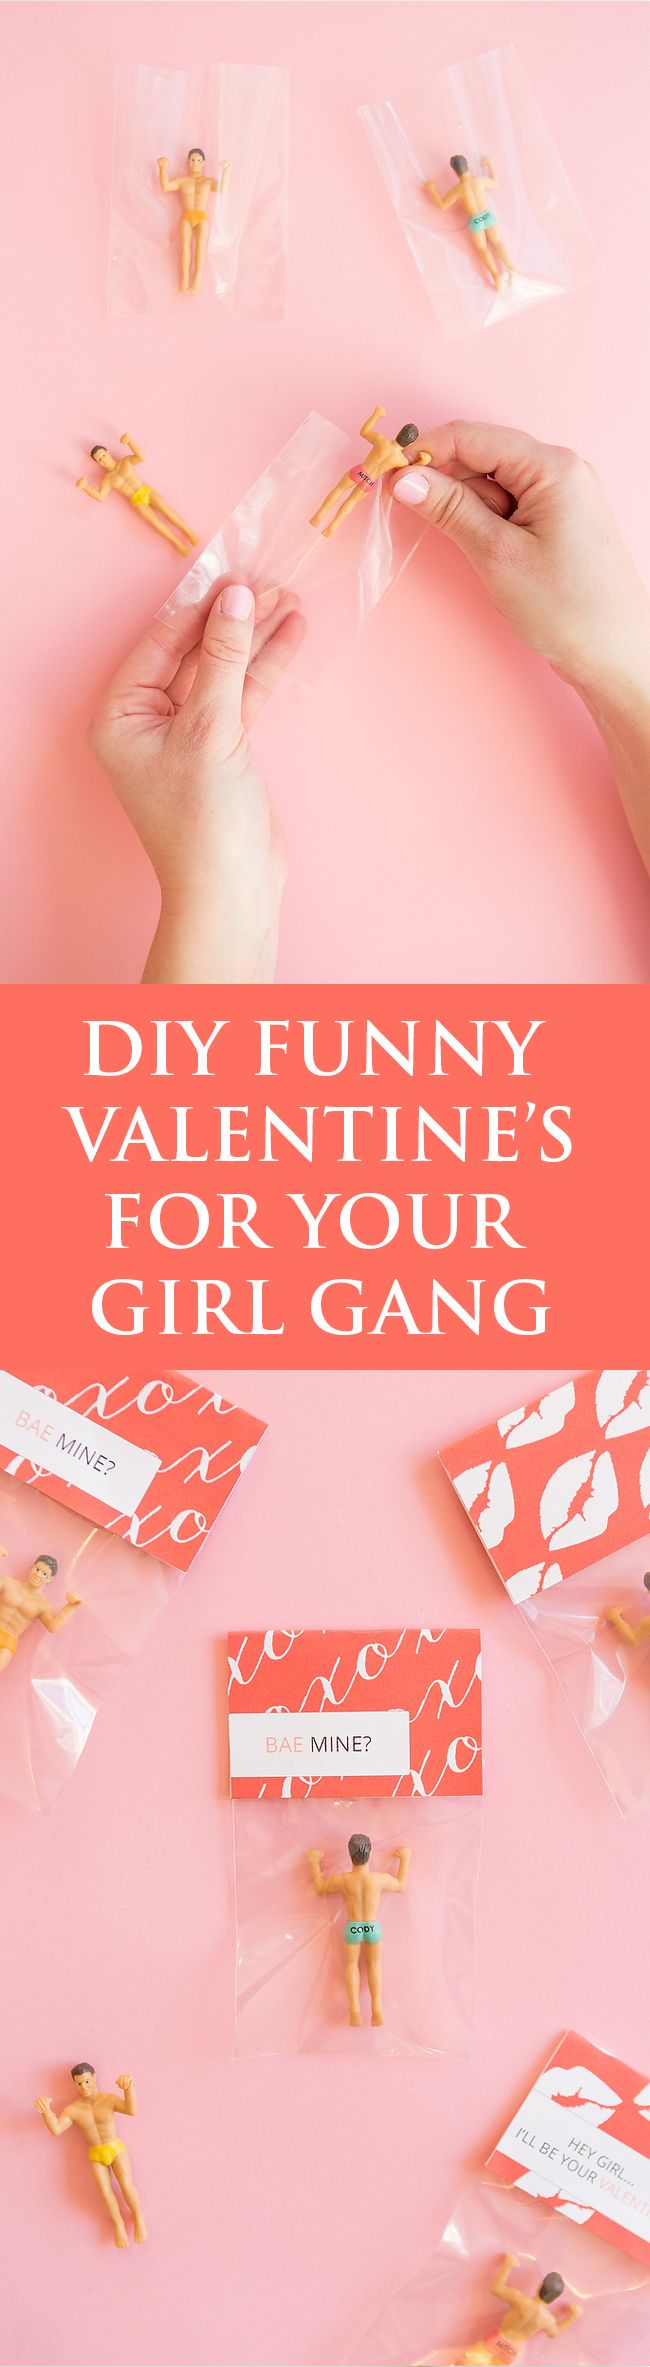 Funny DIY Valentine's Favors For Your Single Girlfriends